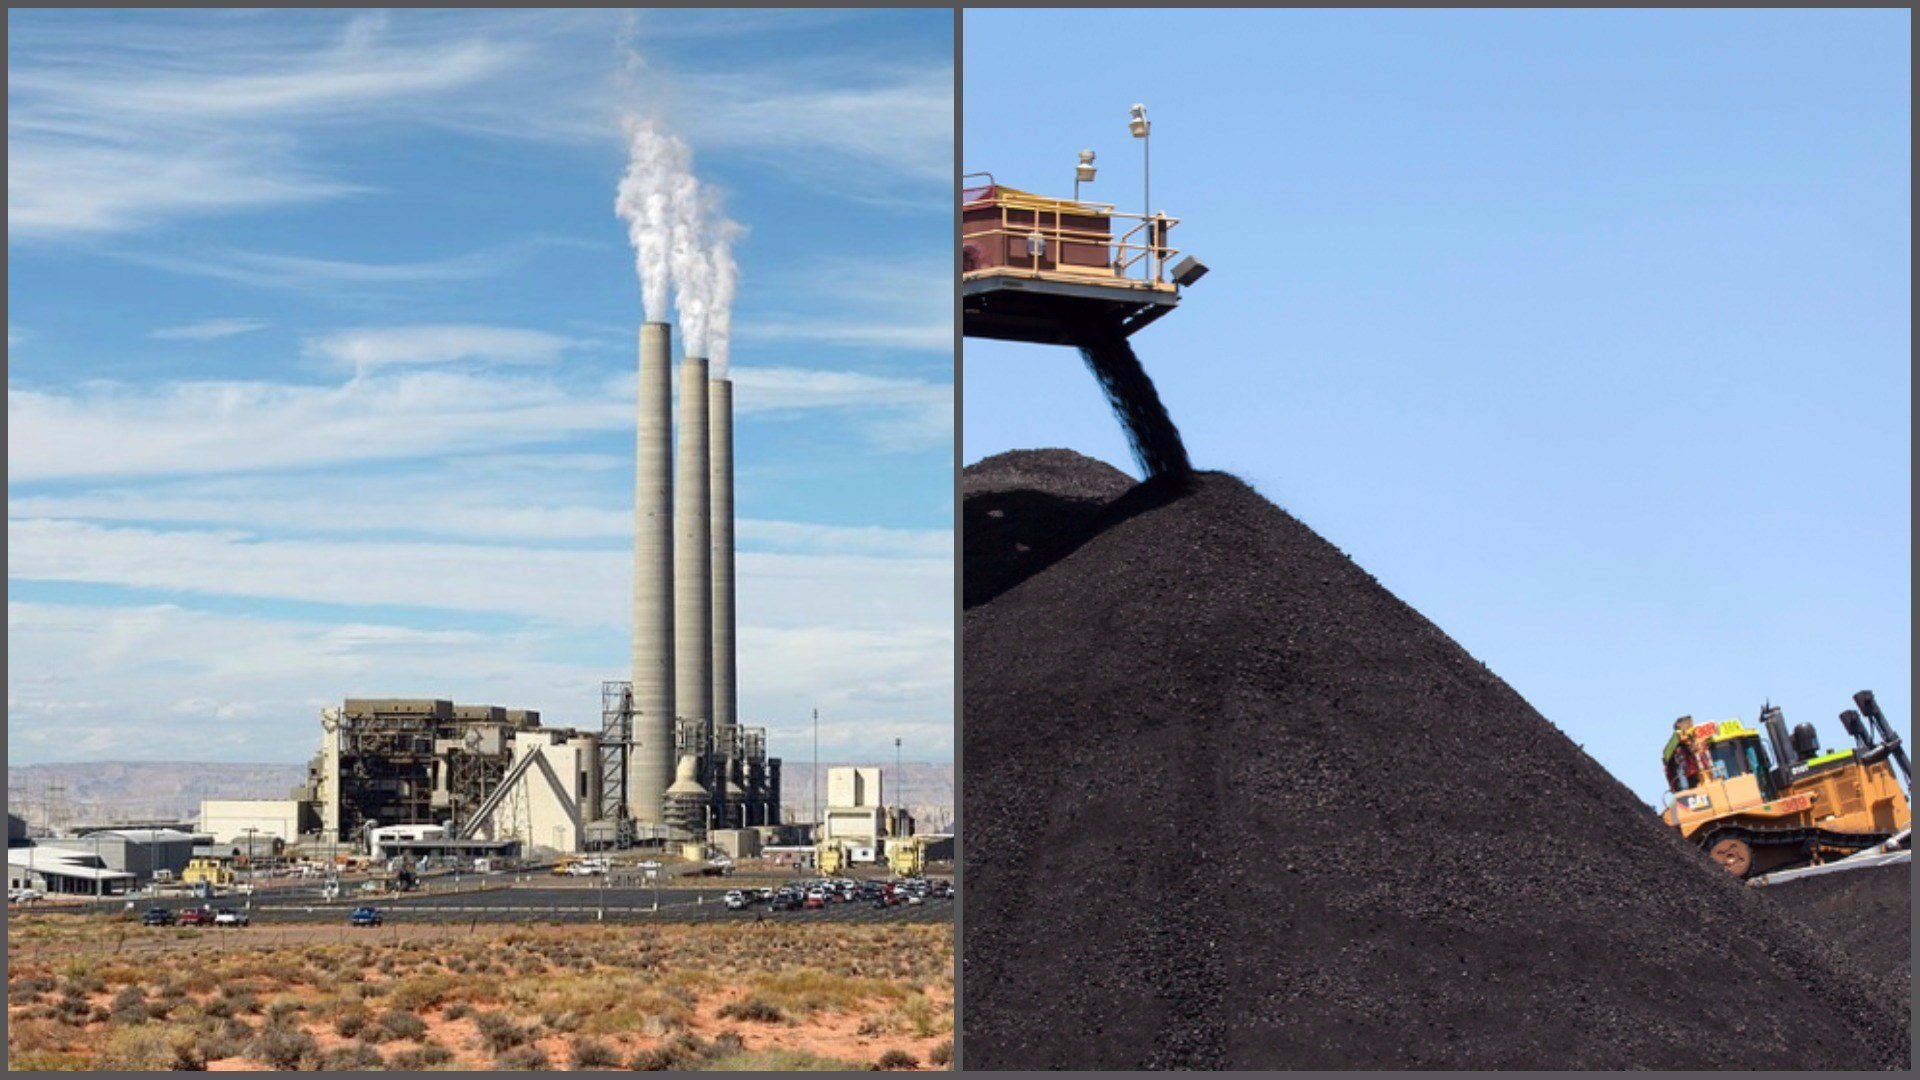 Navajo Generating Station (left) and coal stockpile at Kayenta Mine (Source: Wolfgang Moroder and Peabody Energy)